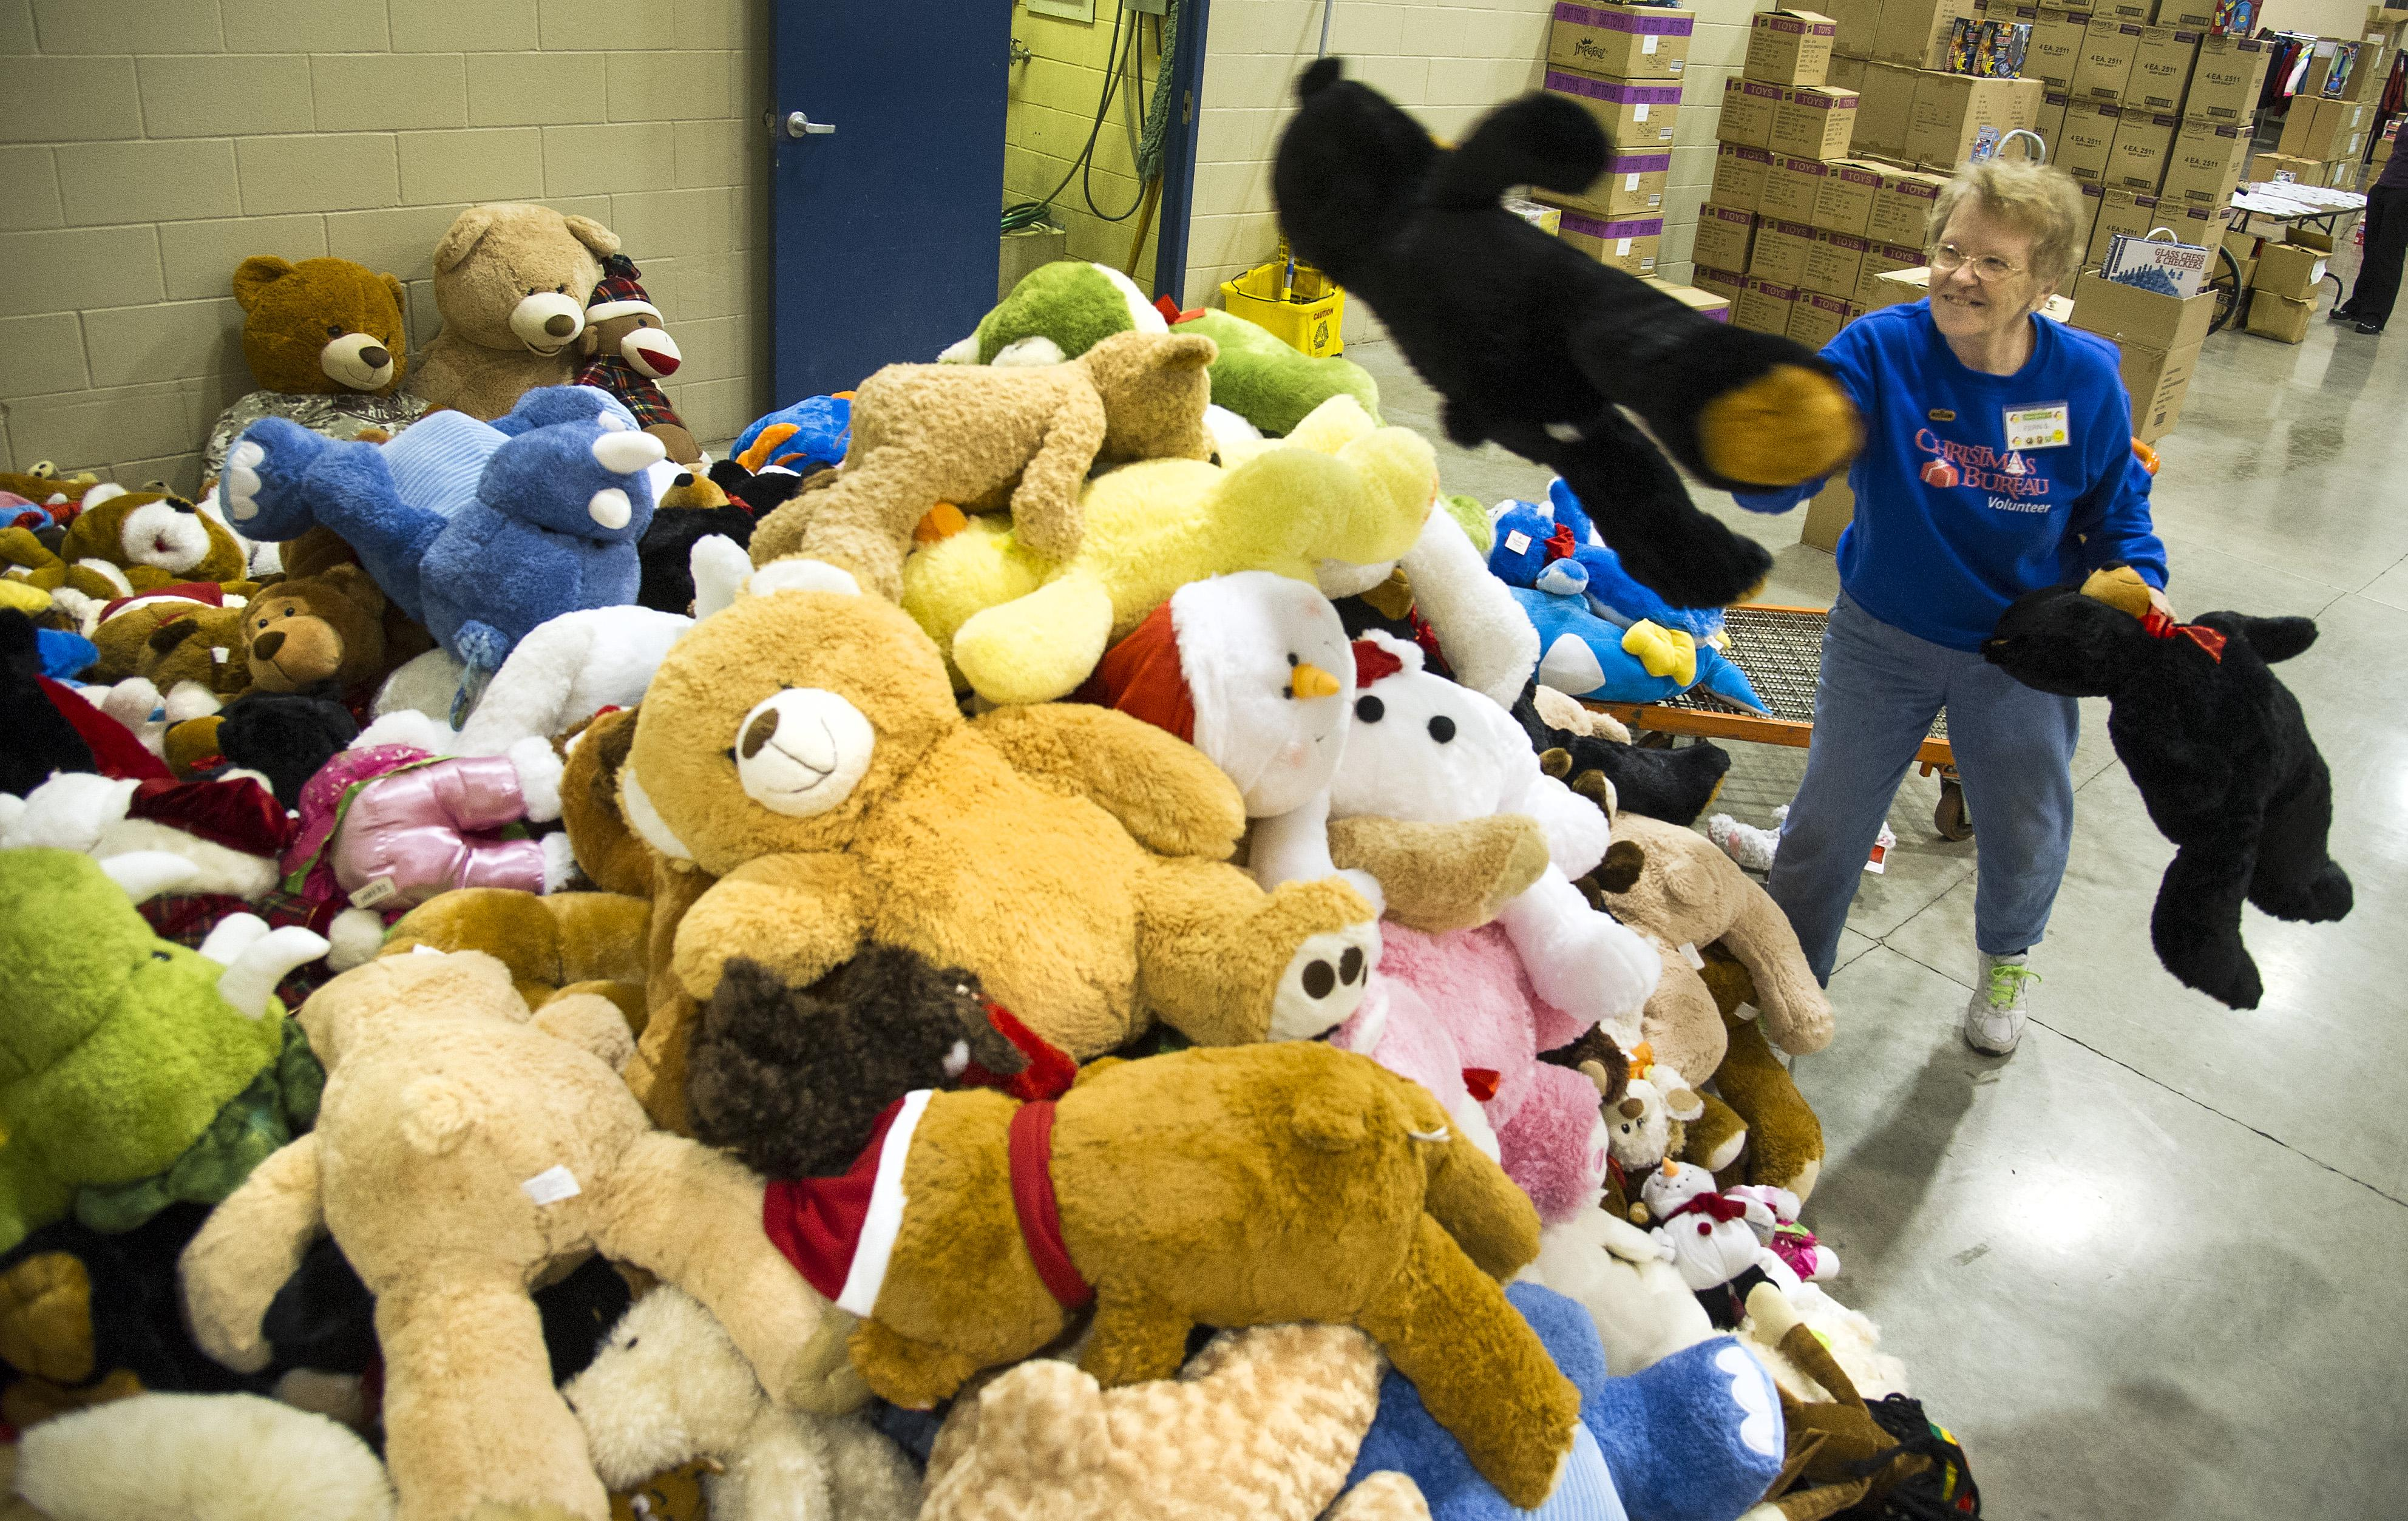 fern swecker pictured here in 2014 sorts teddy bears donated by fans at the - Best Toys Christmas 2014